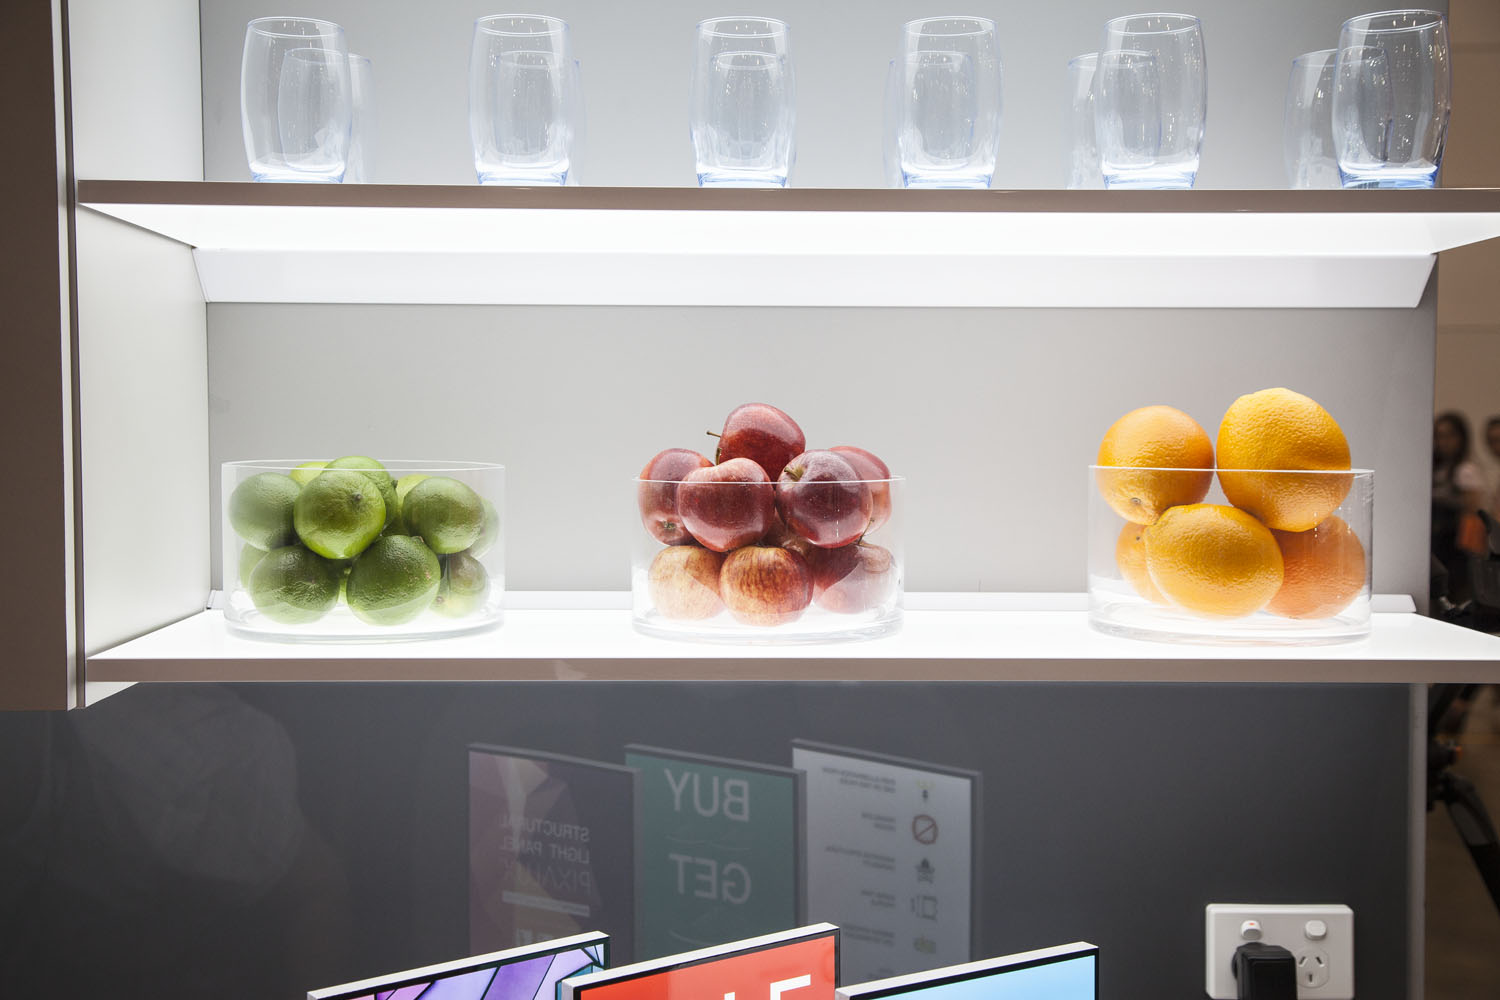 A Pixalux Illuminated Shelf in a kitchen